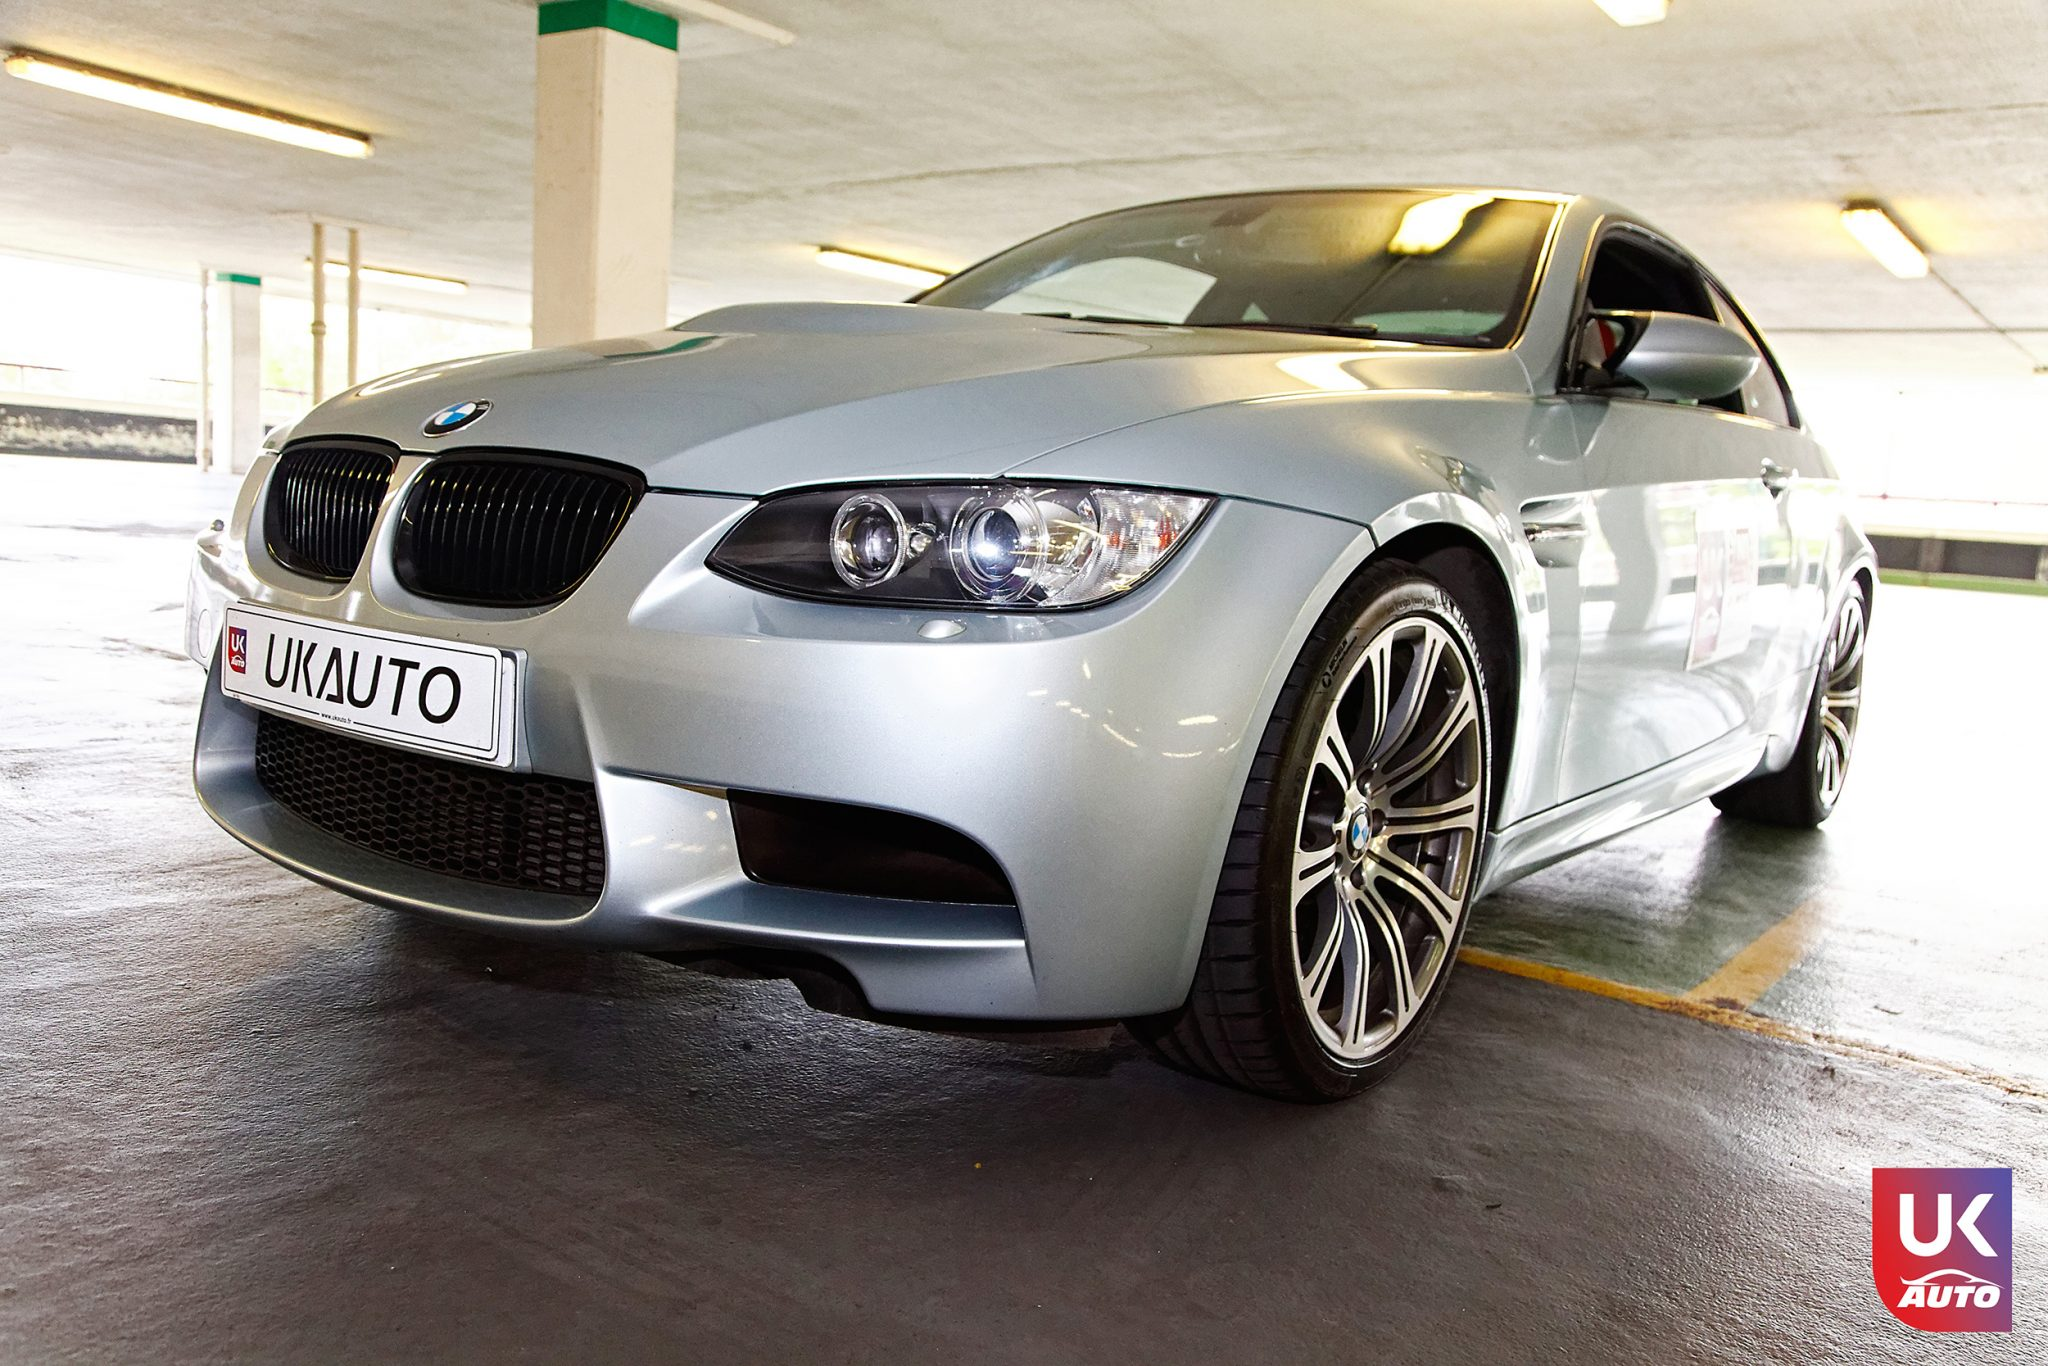 ukauto uk import bmw angleterre bmw m3 rhd e92 v8 mandataire uk angleterre voiture4 - Felicitation a Philippe BMW M3 E92 RHD POUR IMPORTER UNE VOITURE EN ANGLETERRE